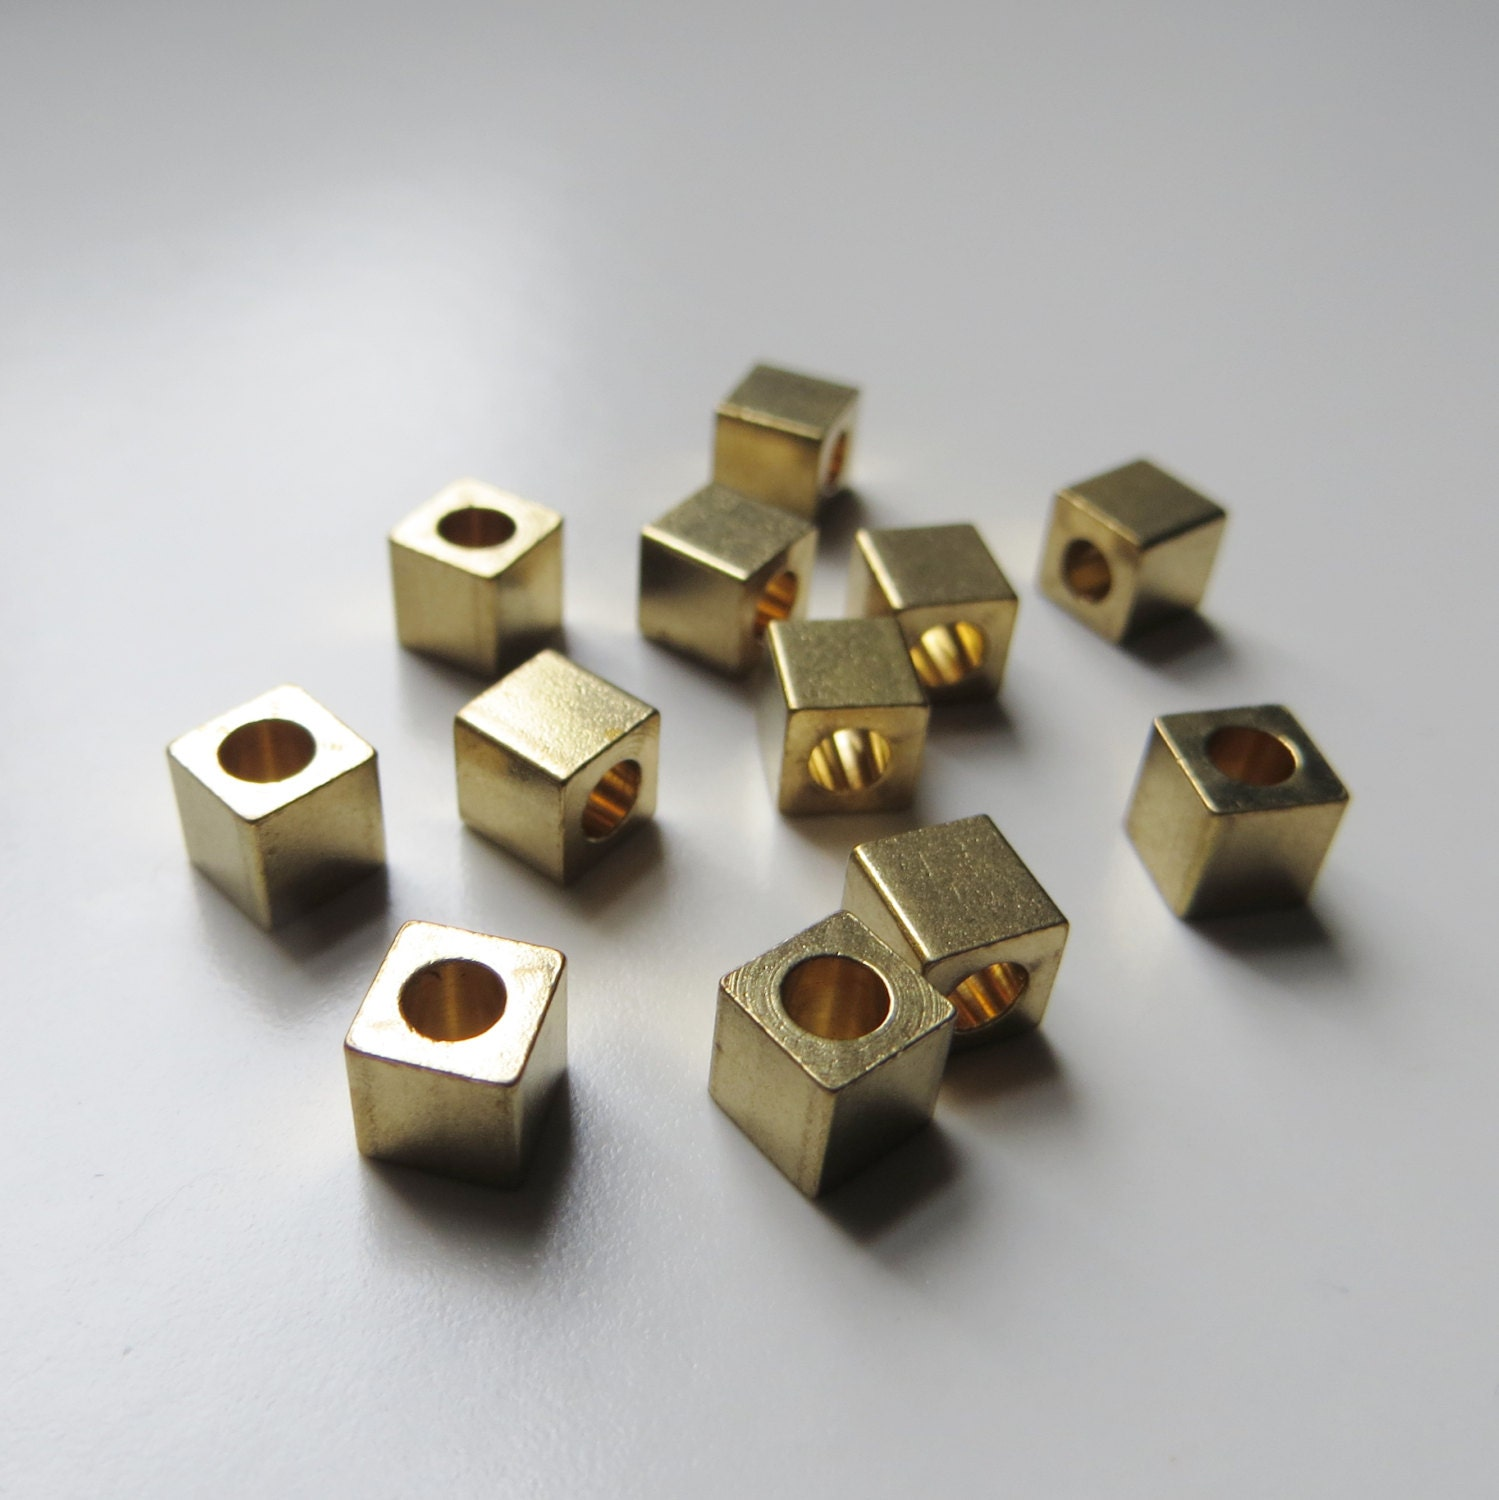 5mm Gold Metal Cube Beads Large Hole 12 Pieces